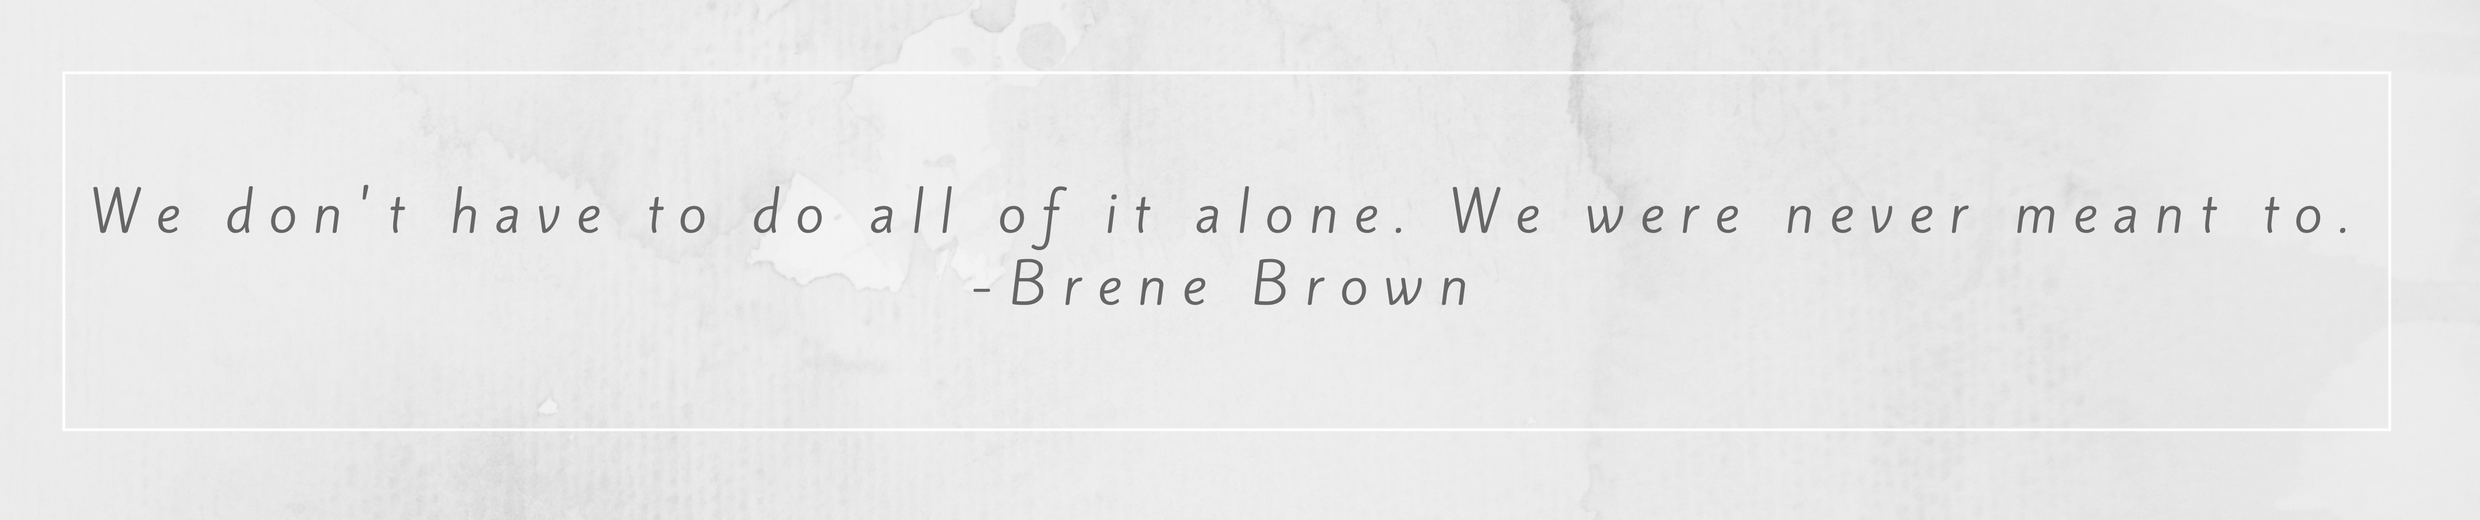 We don't have to do all of it alone. We were never meant to.- Brene Brown